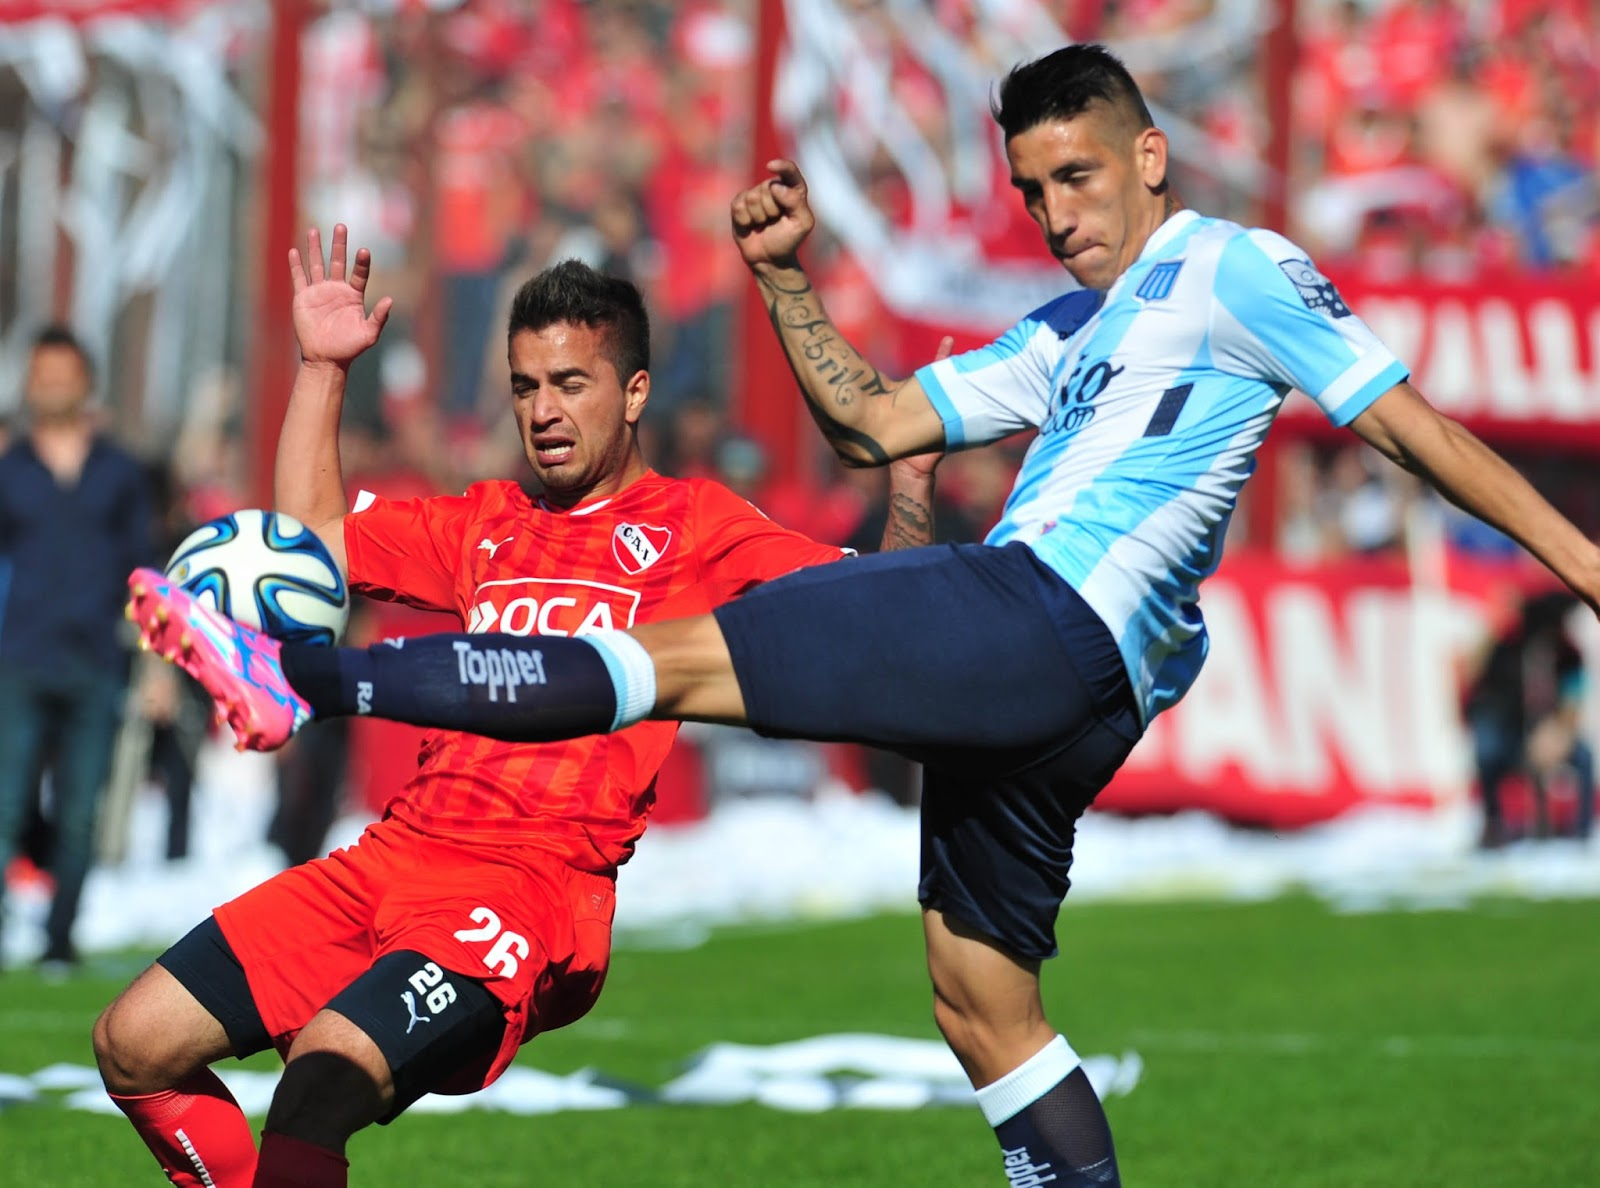 Football Rivalries - Racing and Independiente